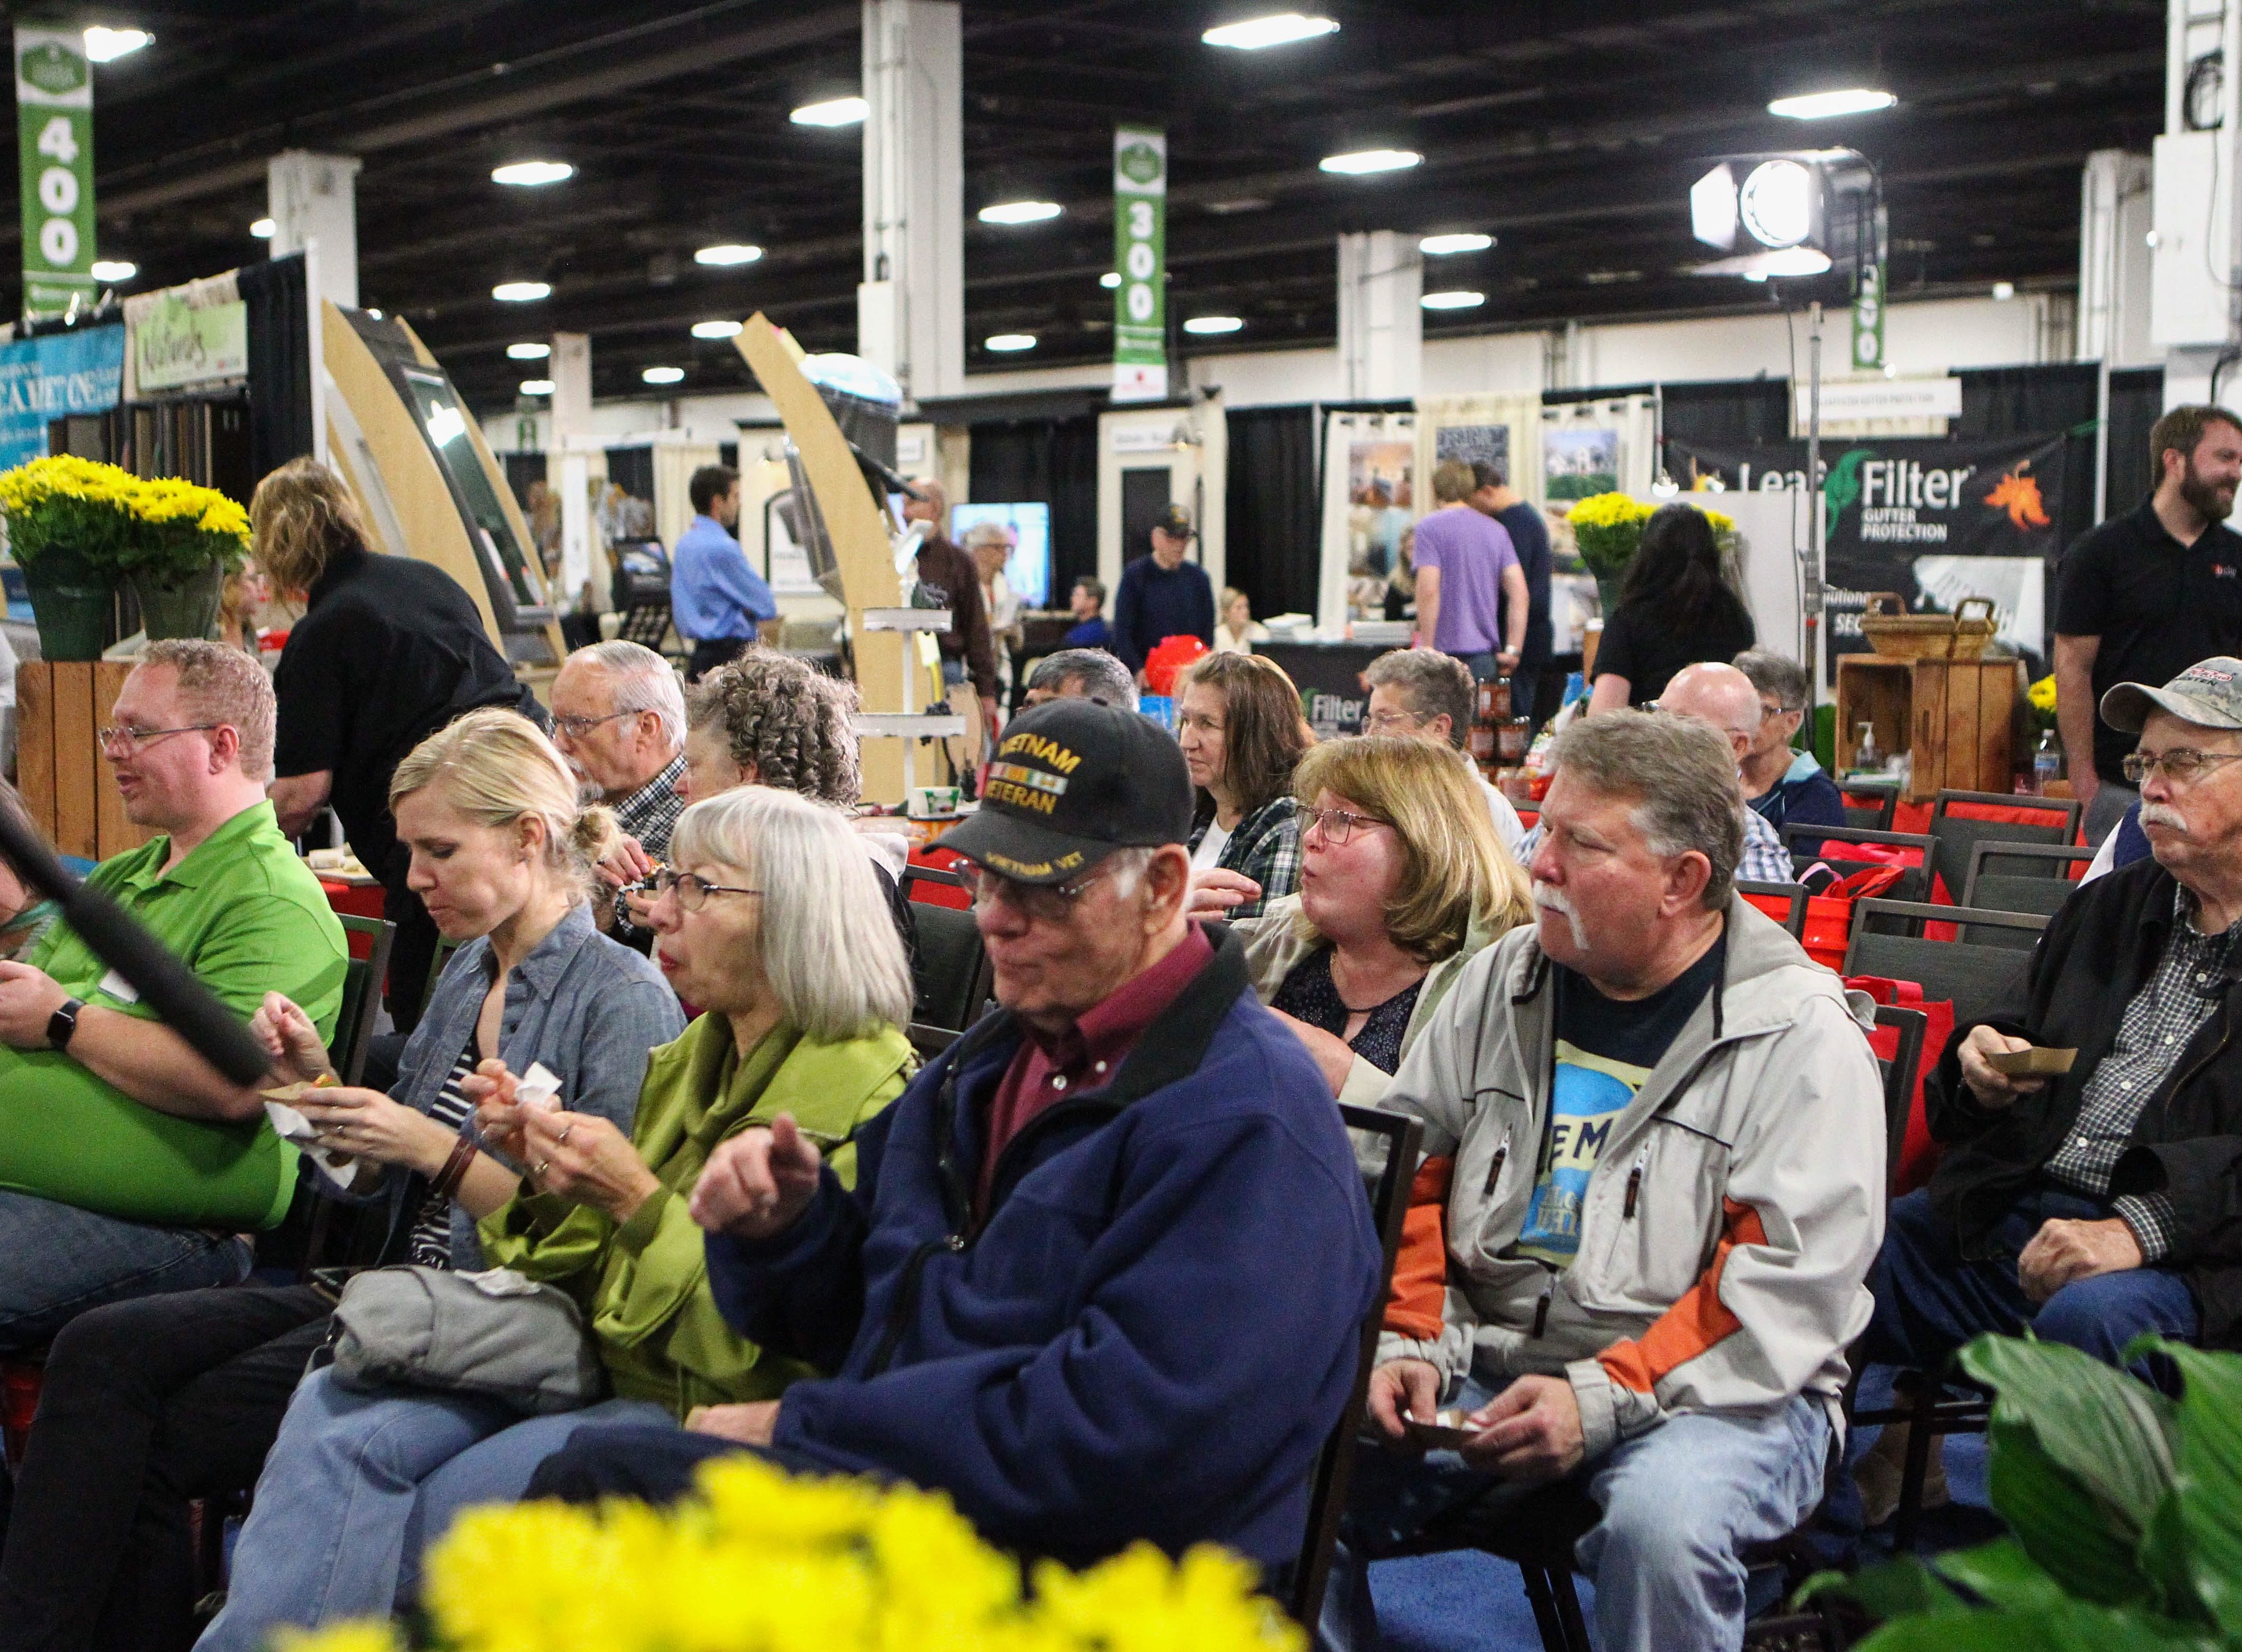 People watch the cooking demonstrations and enjoy samples at the Southern Home and Garden Show at the Greenville Convention Center on Friday, March 1, 2019.